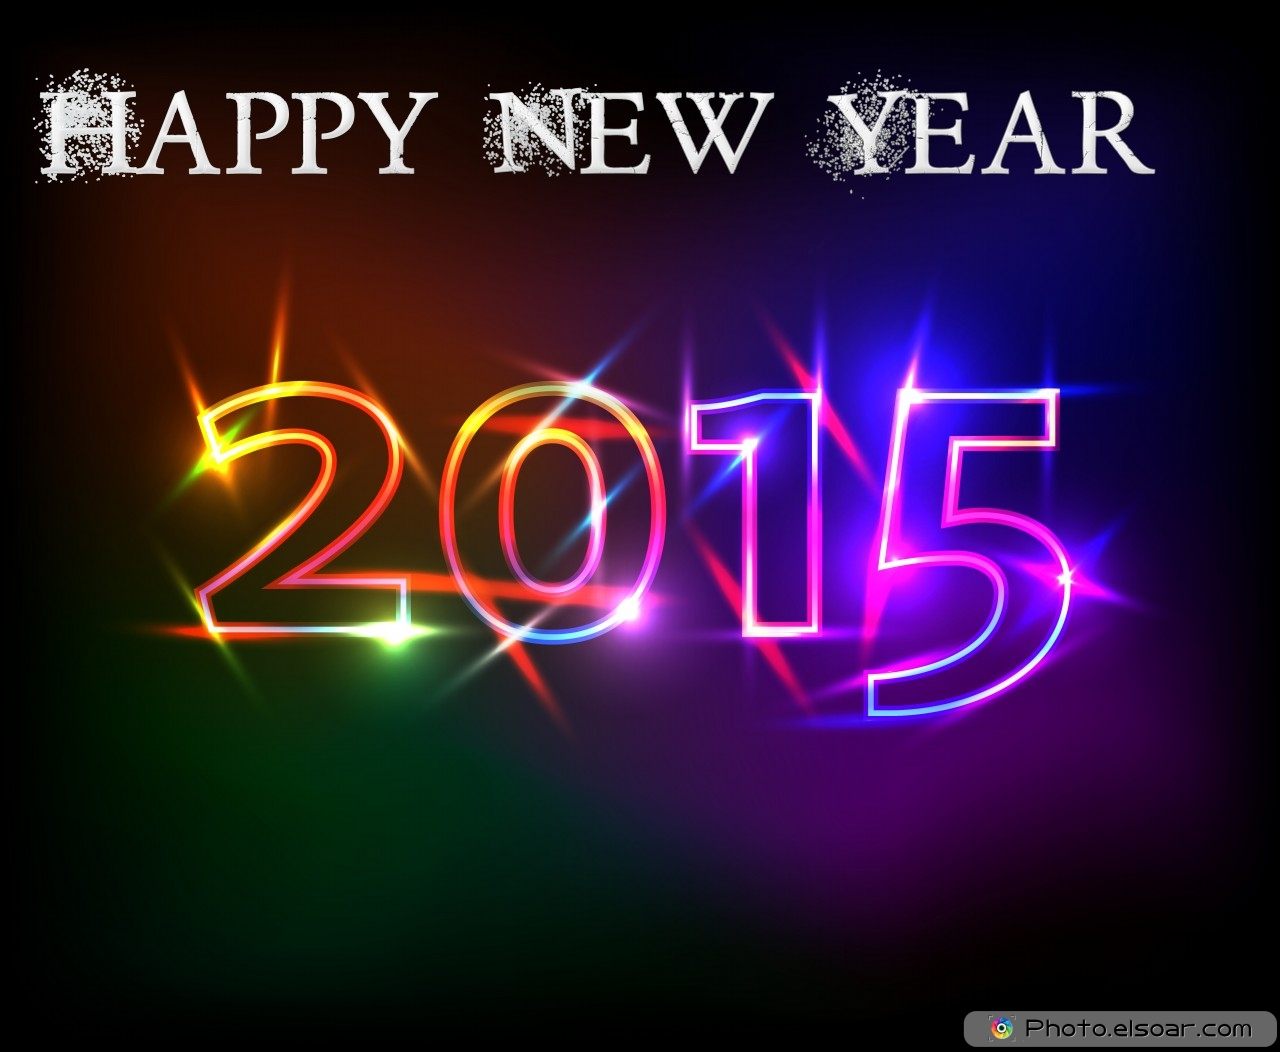 Happy New Year 2015 Hot Colors On Black Backgrounds 1280x1052